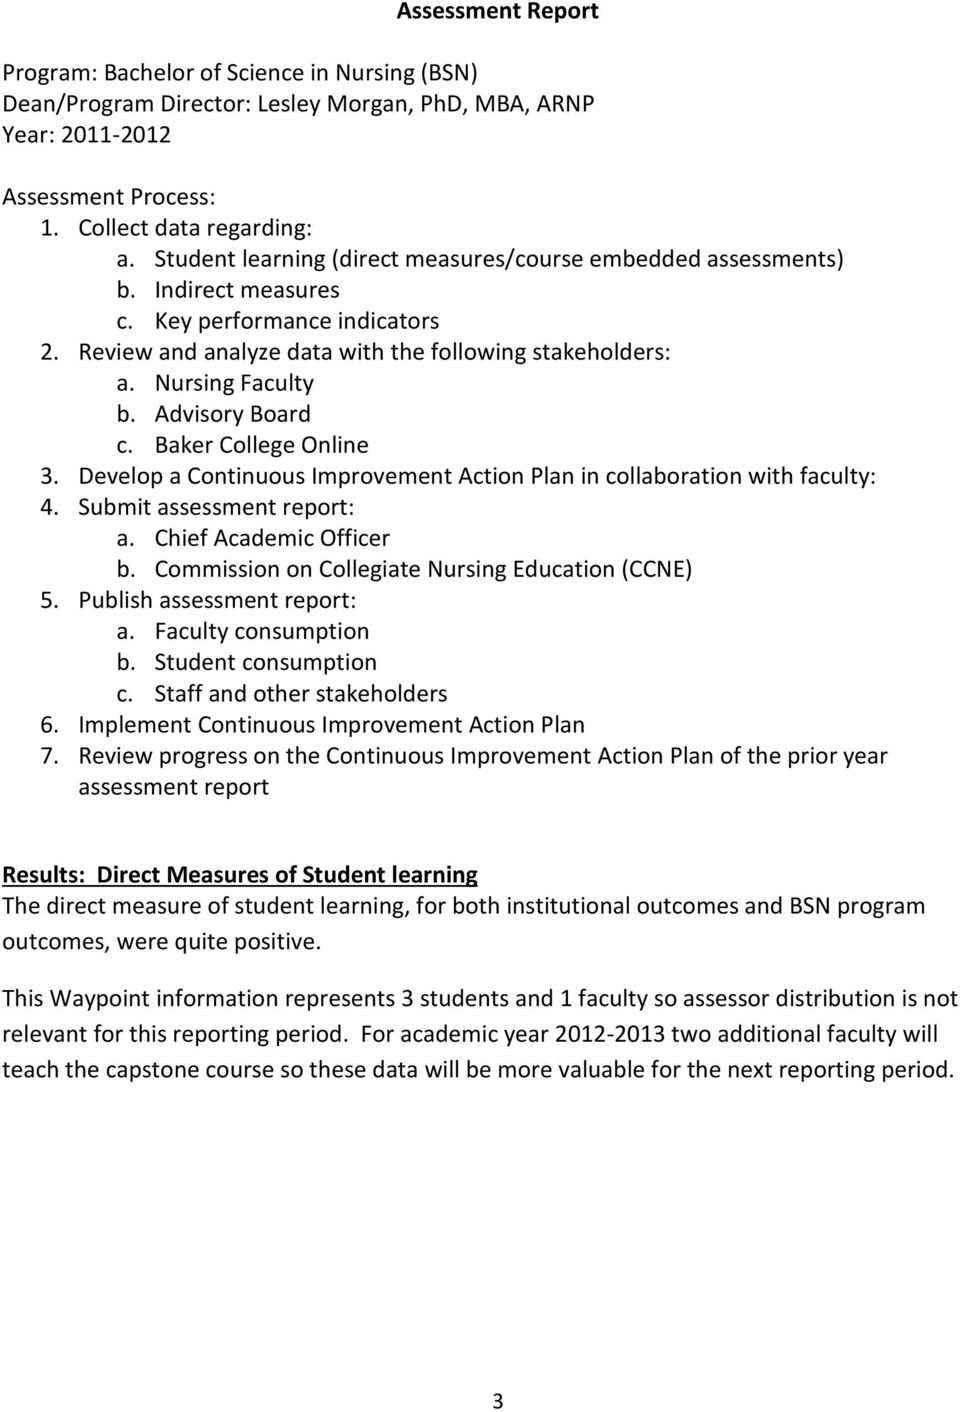 Advisory Board c. Baker College Online 3. Develop a Continuous Improvement Action Plan in collaboration with faculty: 4. Submit assessment report: a. Chief Academic Officer b.